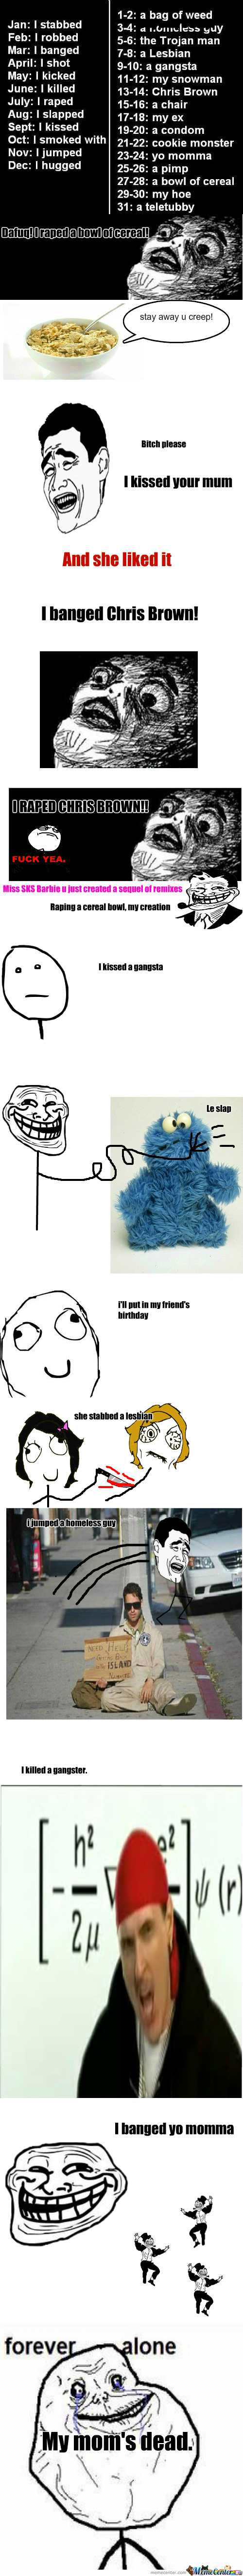 [RMX] [RMX] [RMX] [RMX] [RMX] [RMX] [RMX] [RMX] [RMX] [RMX] [RMX] [RMX] [RMX] I Robbed Cookie Monster How About You?